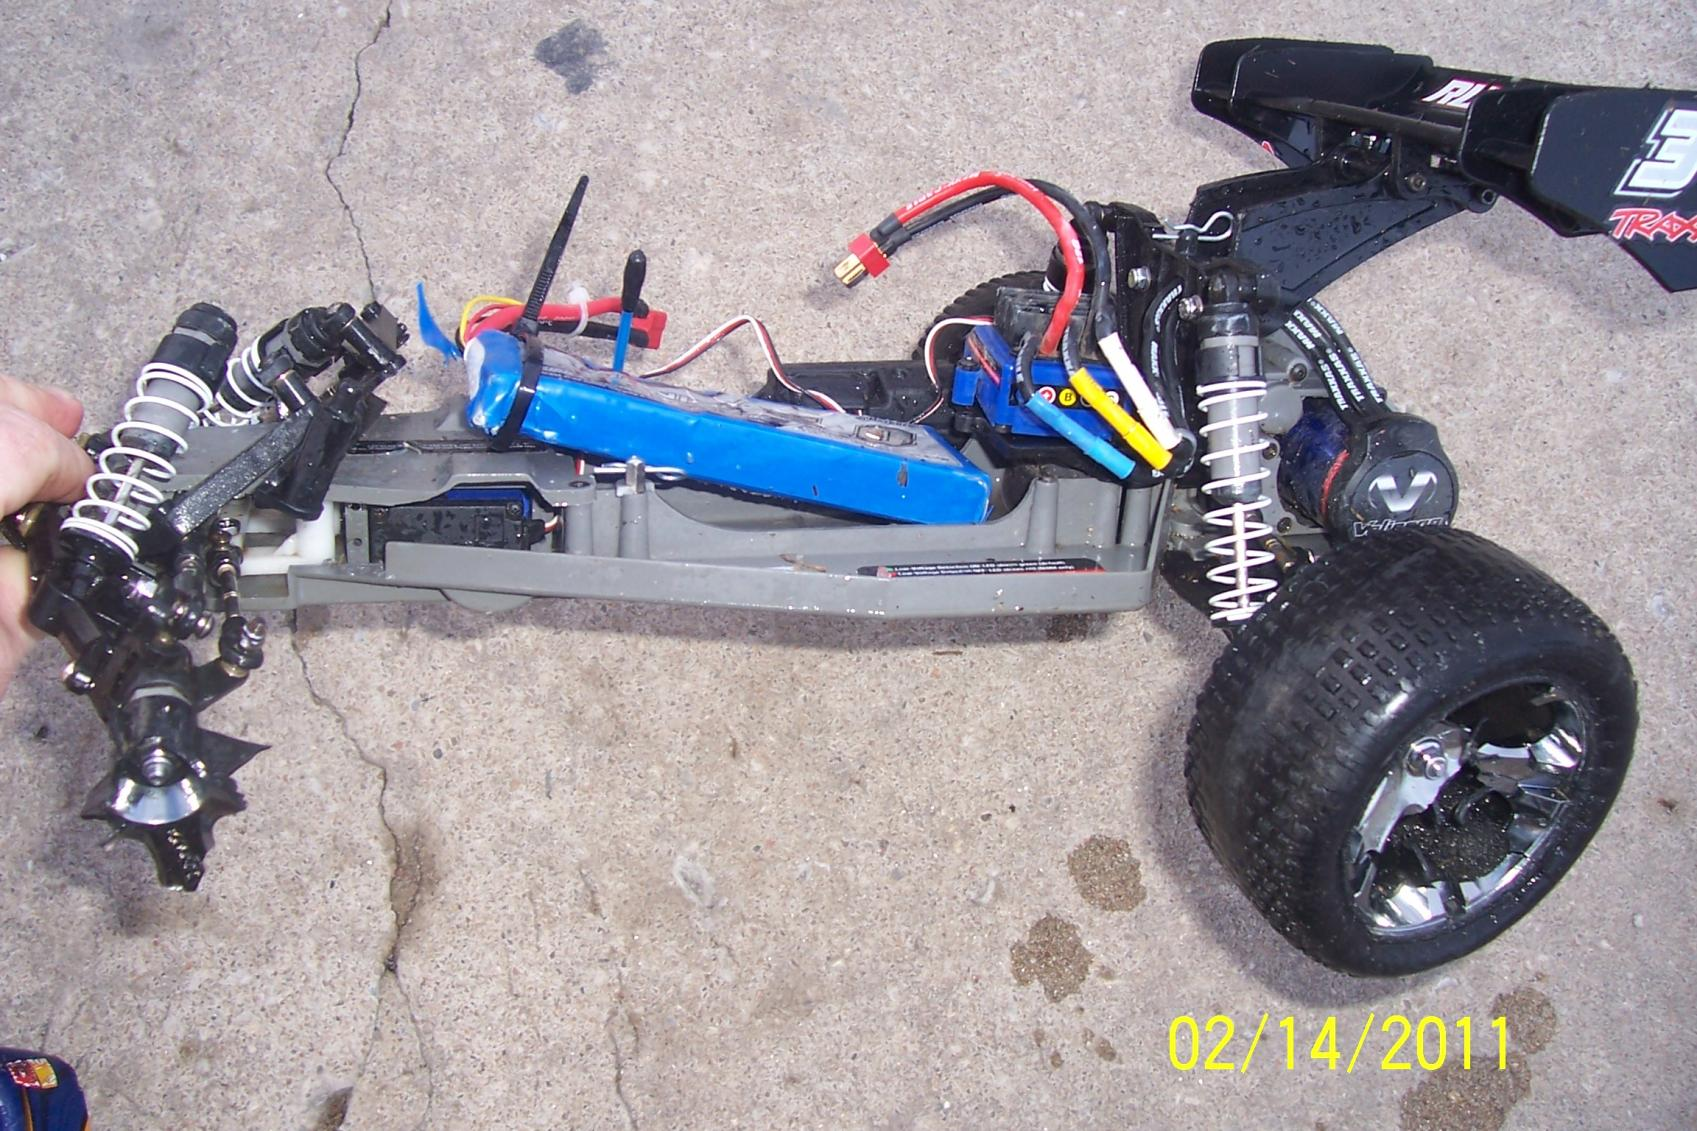 Topeka Onroad Racing Page 336 R C Tech Forums Ideas And Designs